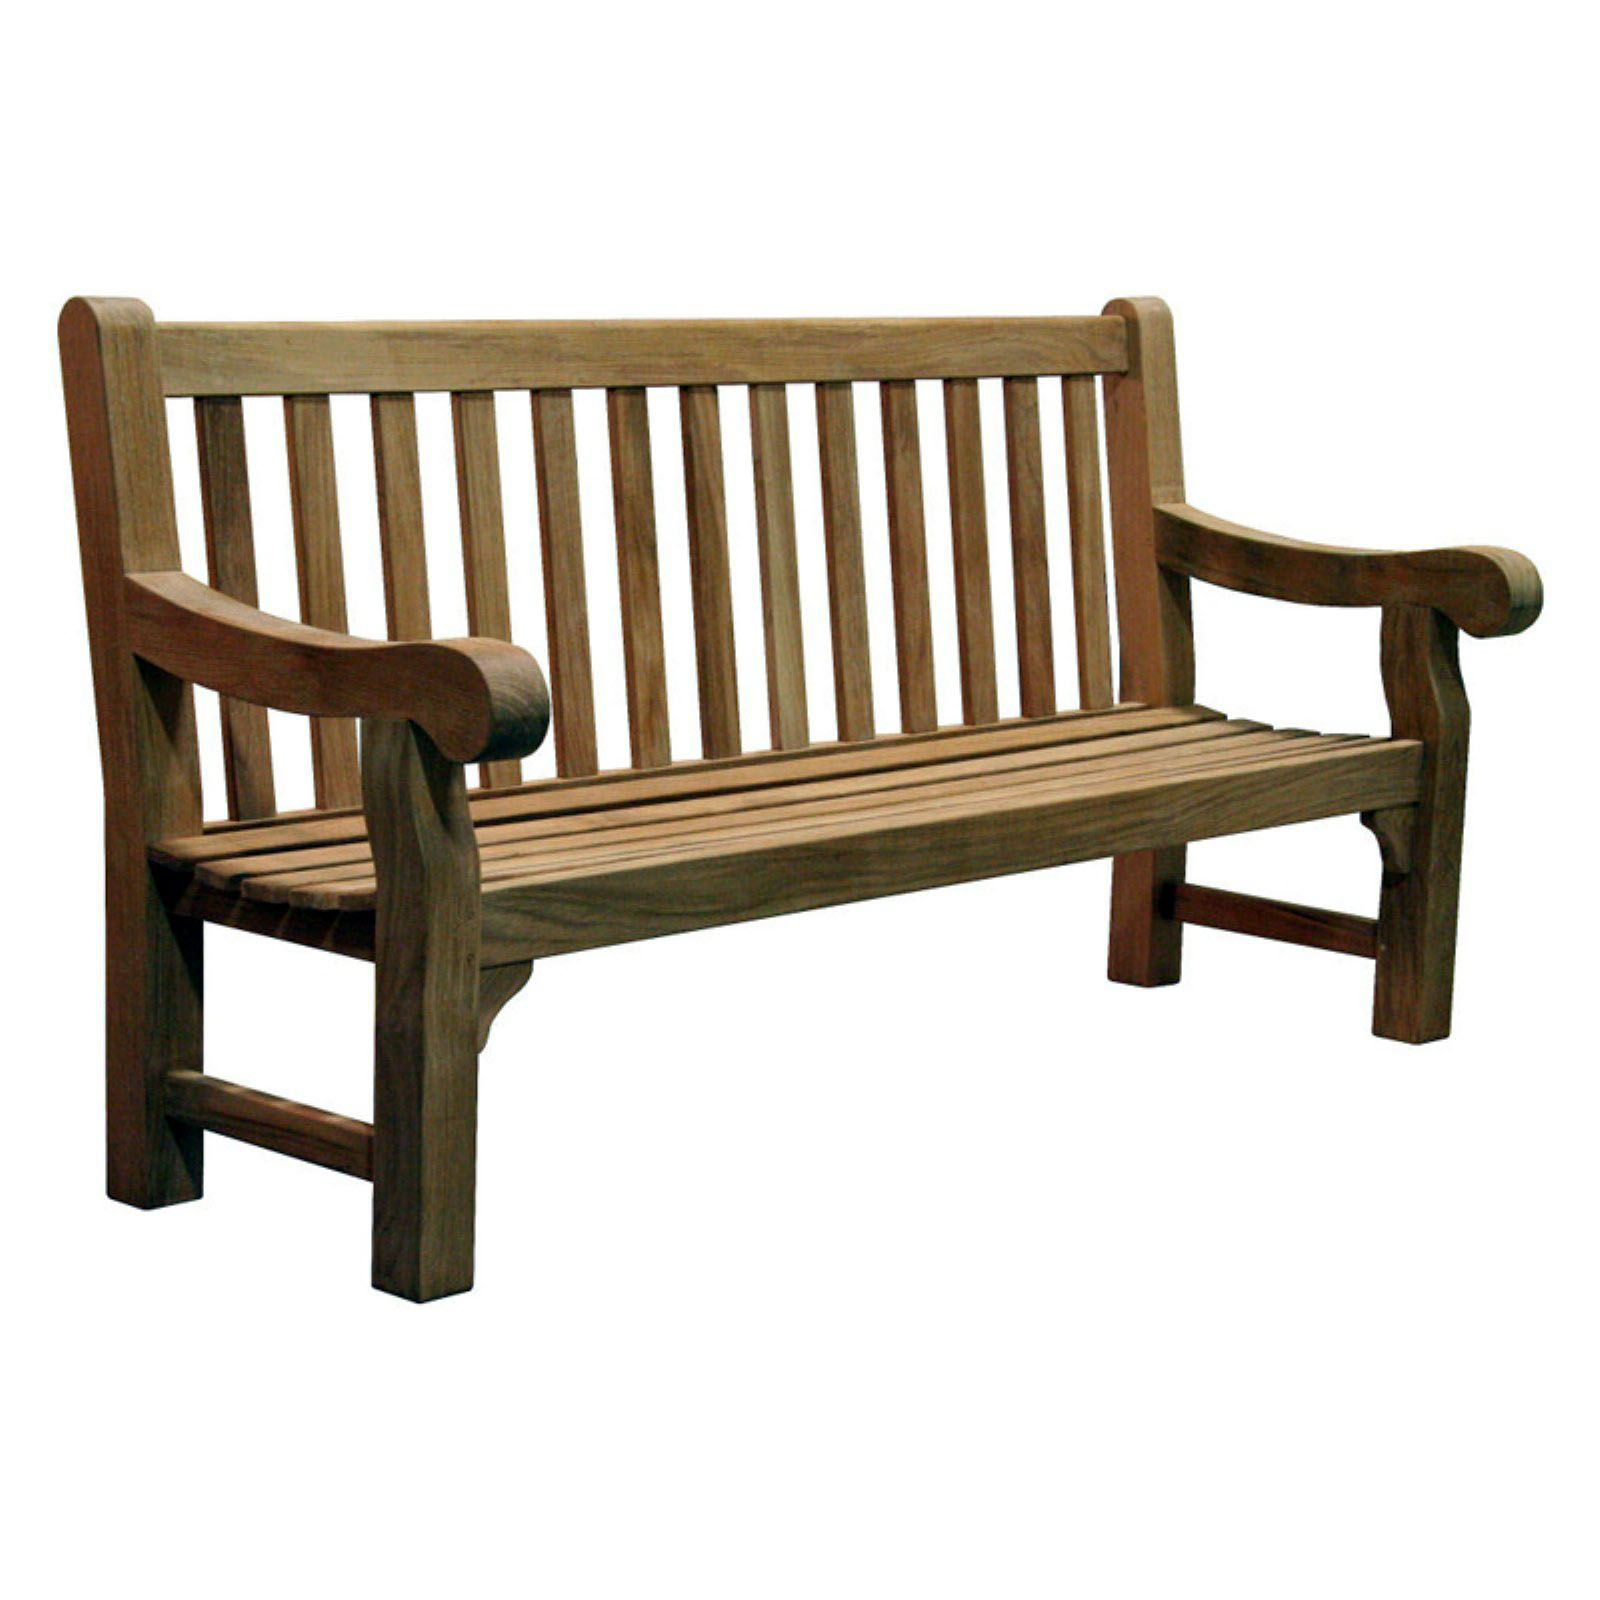 Amazing Teak Outdoor Furniture Sydney Sale One And Only Miraliva Com Teak Outdoor Furniture Teak Patio Bench